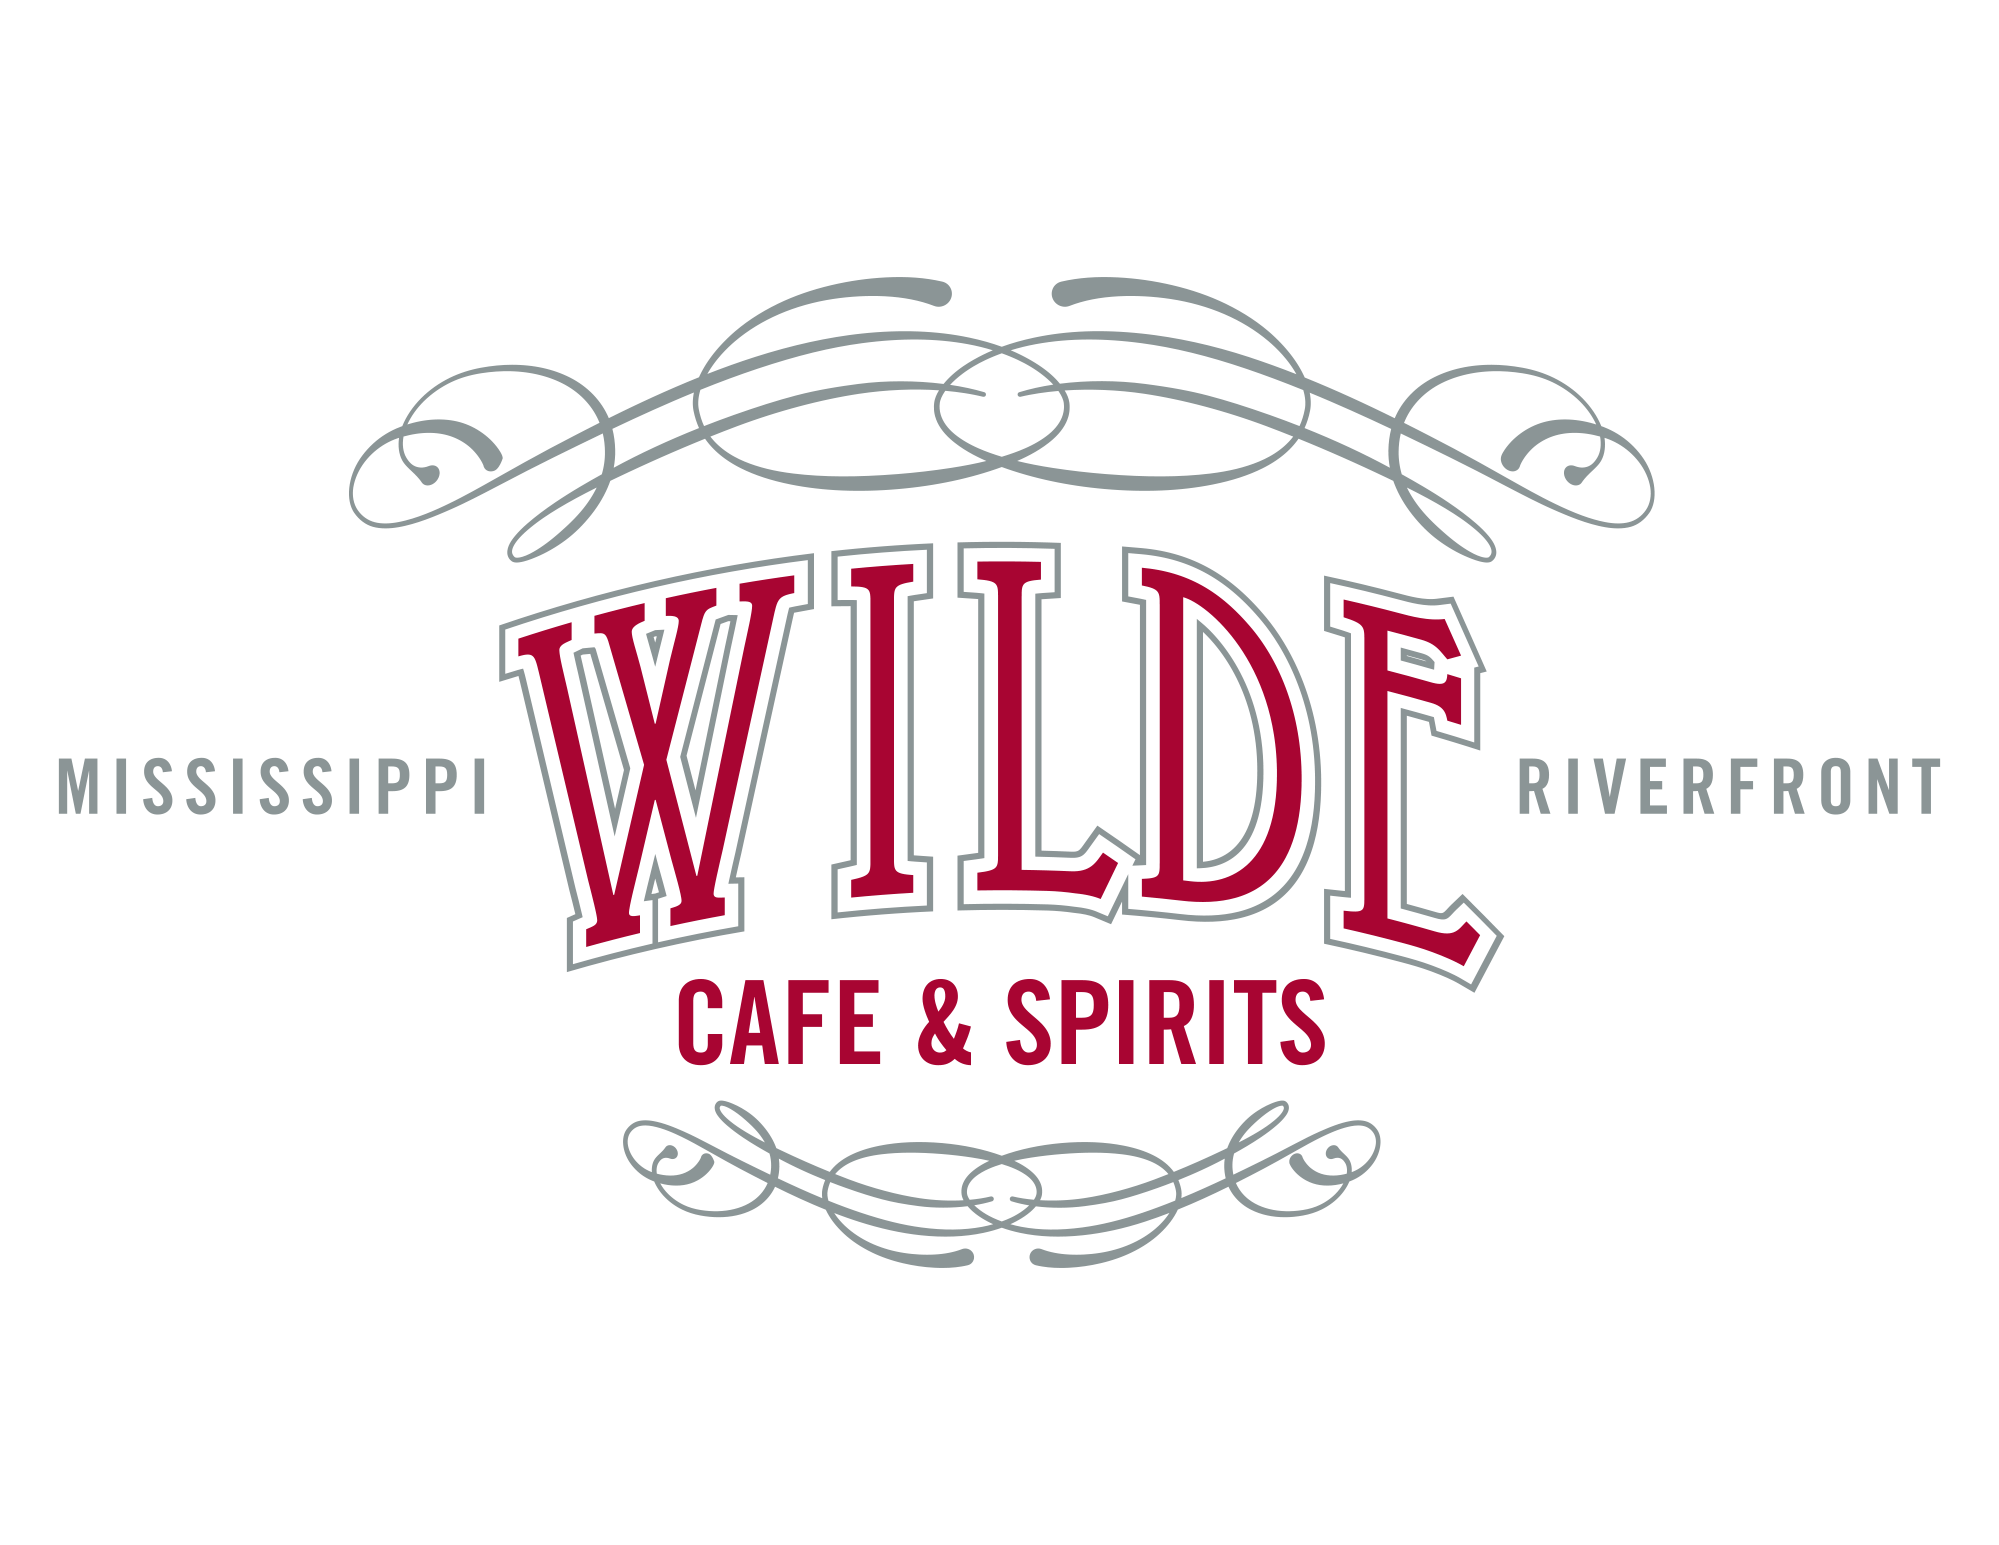 WILDE-CAFE_LOGO-RIVERFRONT-color